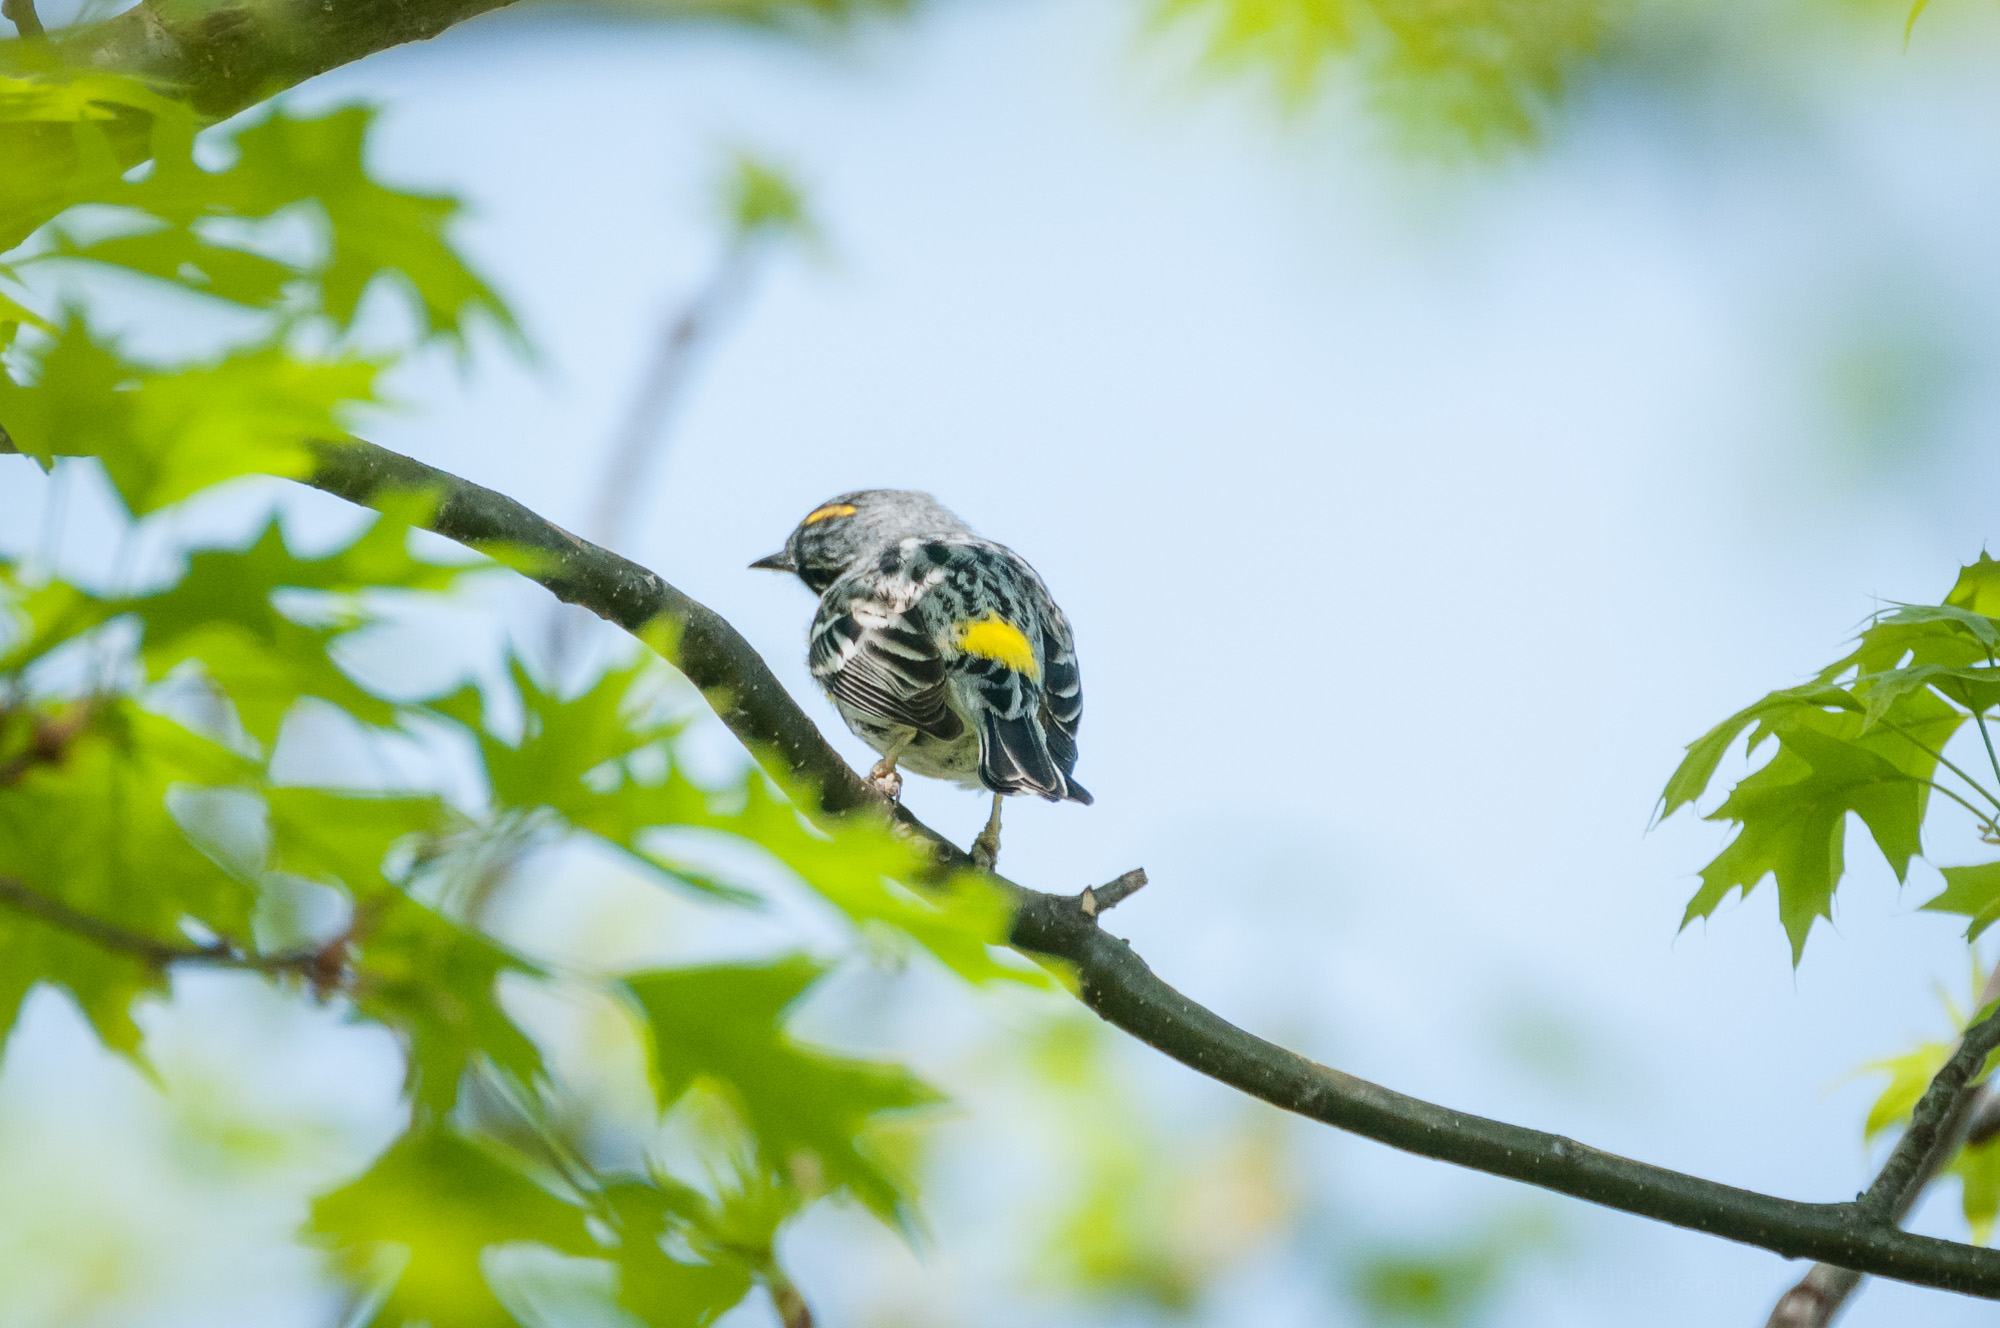 Backside of a Yellow-rumped Warbler, showing its namesake yellow rump. Also notice it is tilting its head to the left showing off the yellow stripe on top.